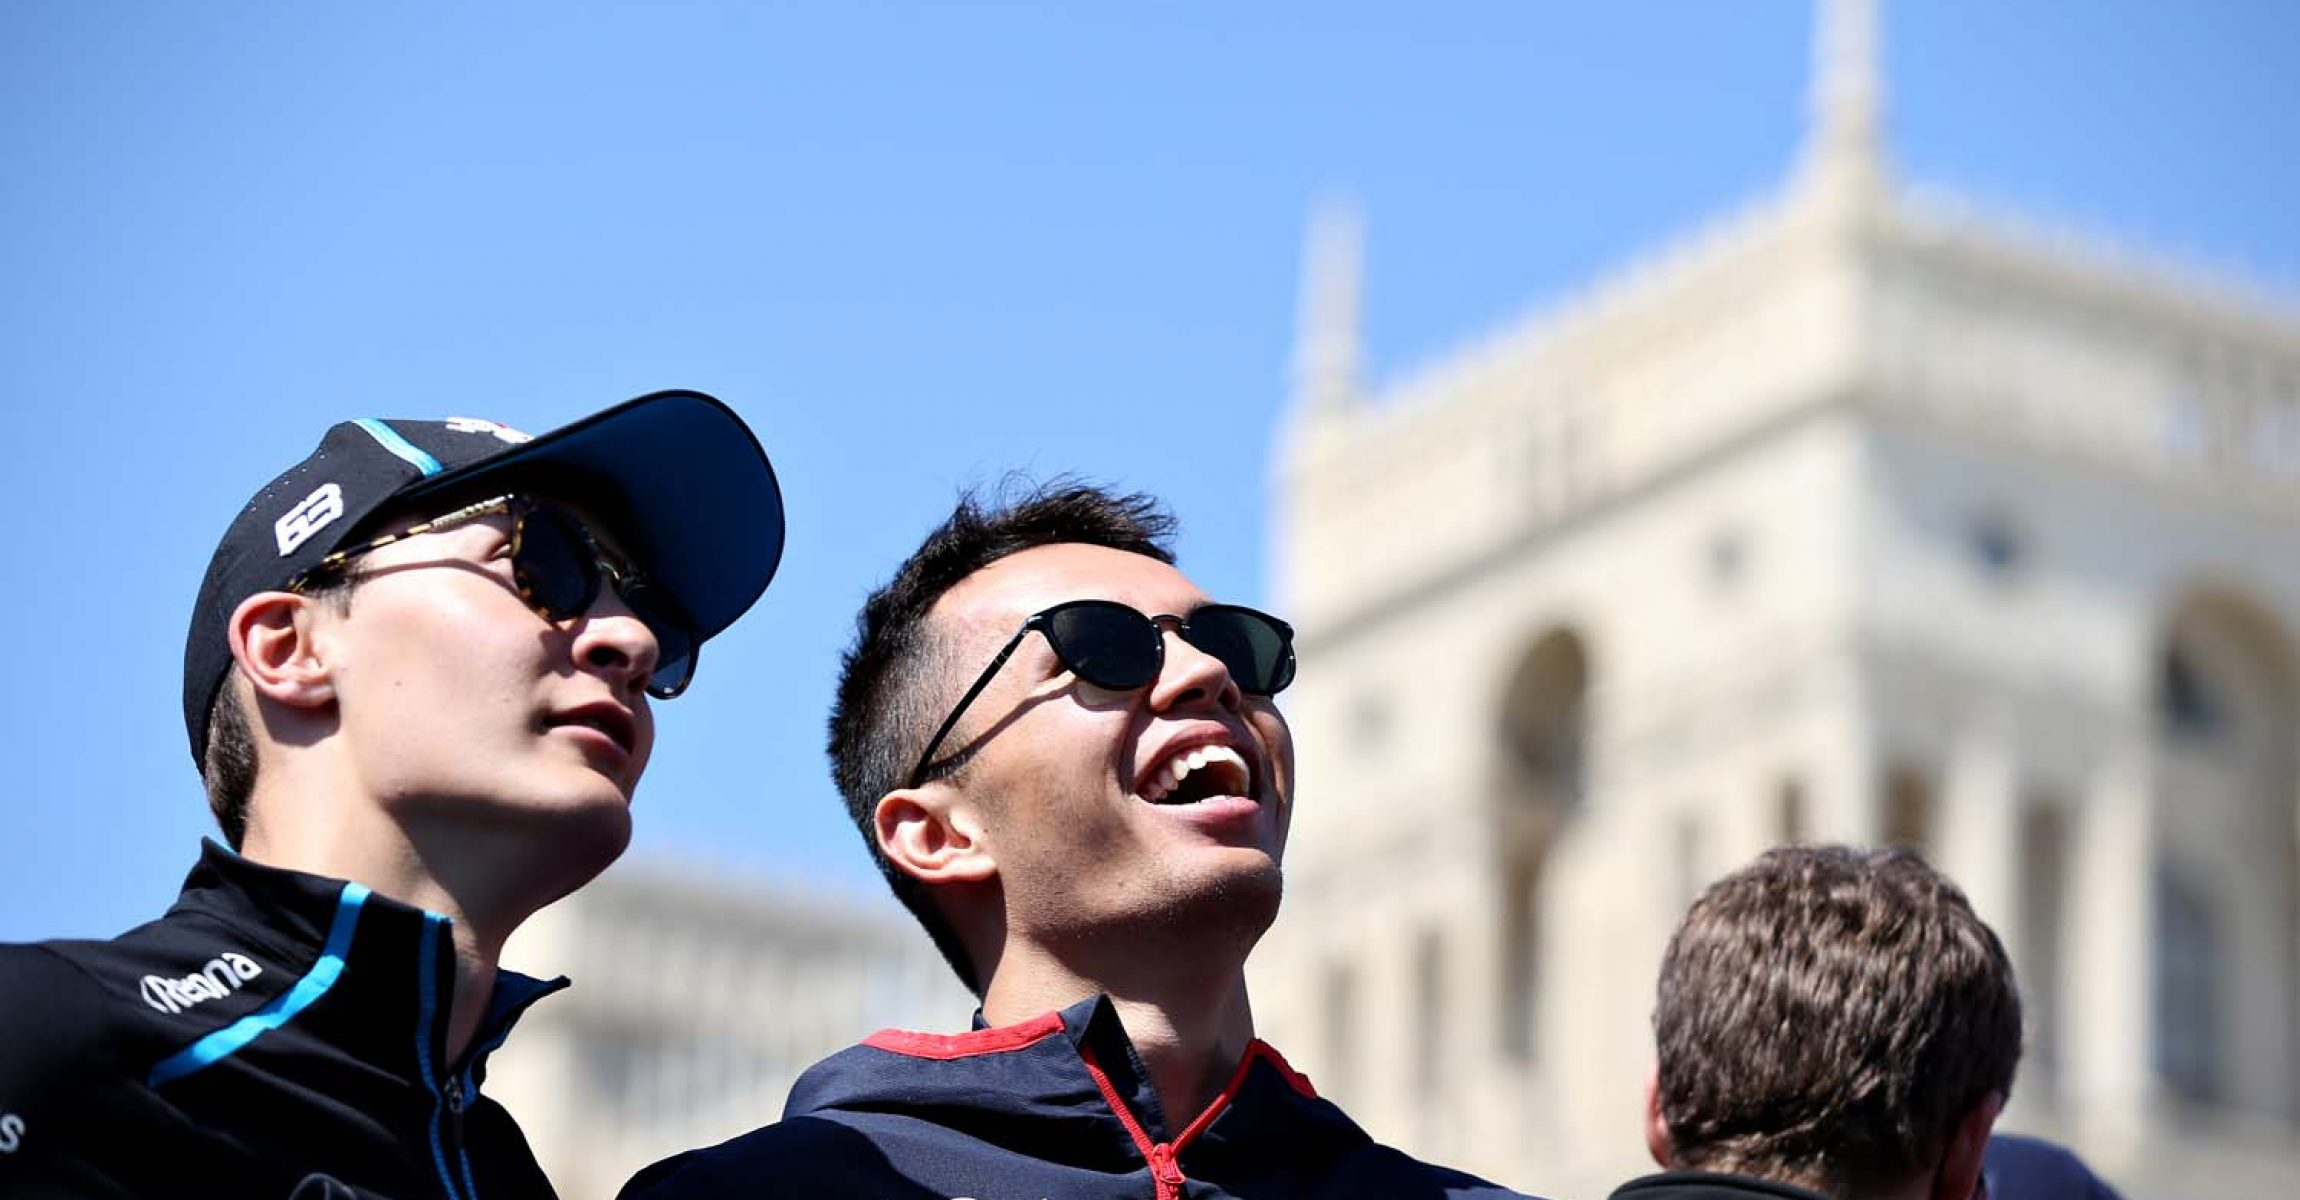 BAKU, AZERBAIJAN - APRIL 28: Alexander Albon of Thailand and Scuderia Toro Rosso and George Russell of Great Britain and Williams look on from the drivers parade before the F1 Grand Prix of Azerbaijan at Baku City Circuit on April 28, 2019 in Baku, Azerbaijan. (Photo by Charles Coates/Getty Images) // Getty Images / Red Bull Content Pool // AP-1Z5YC3JZD1W11 // Usage for editorial use only // Please go to www.redbullcontentpool.com for further information. //